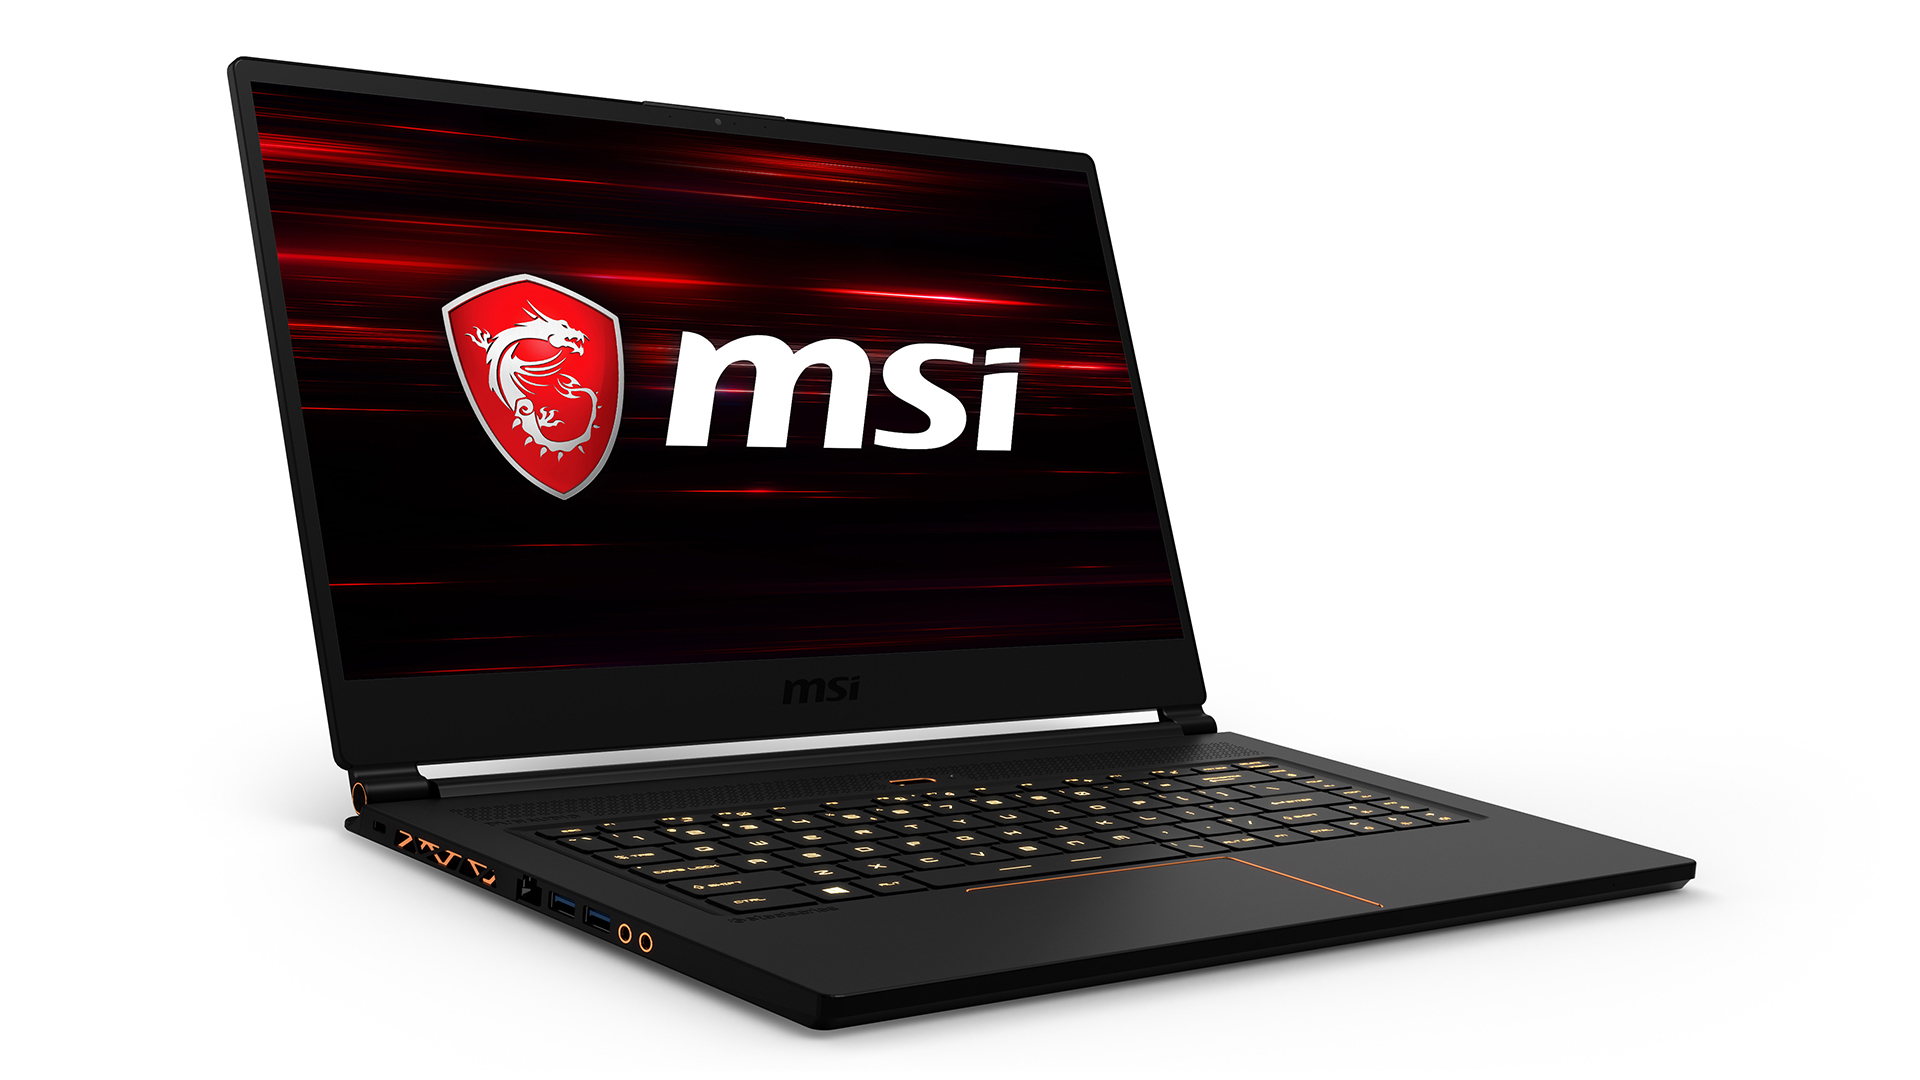 The best MSI gaming laptops 2019: our pick of the gaming powerhouses